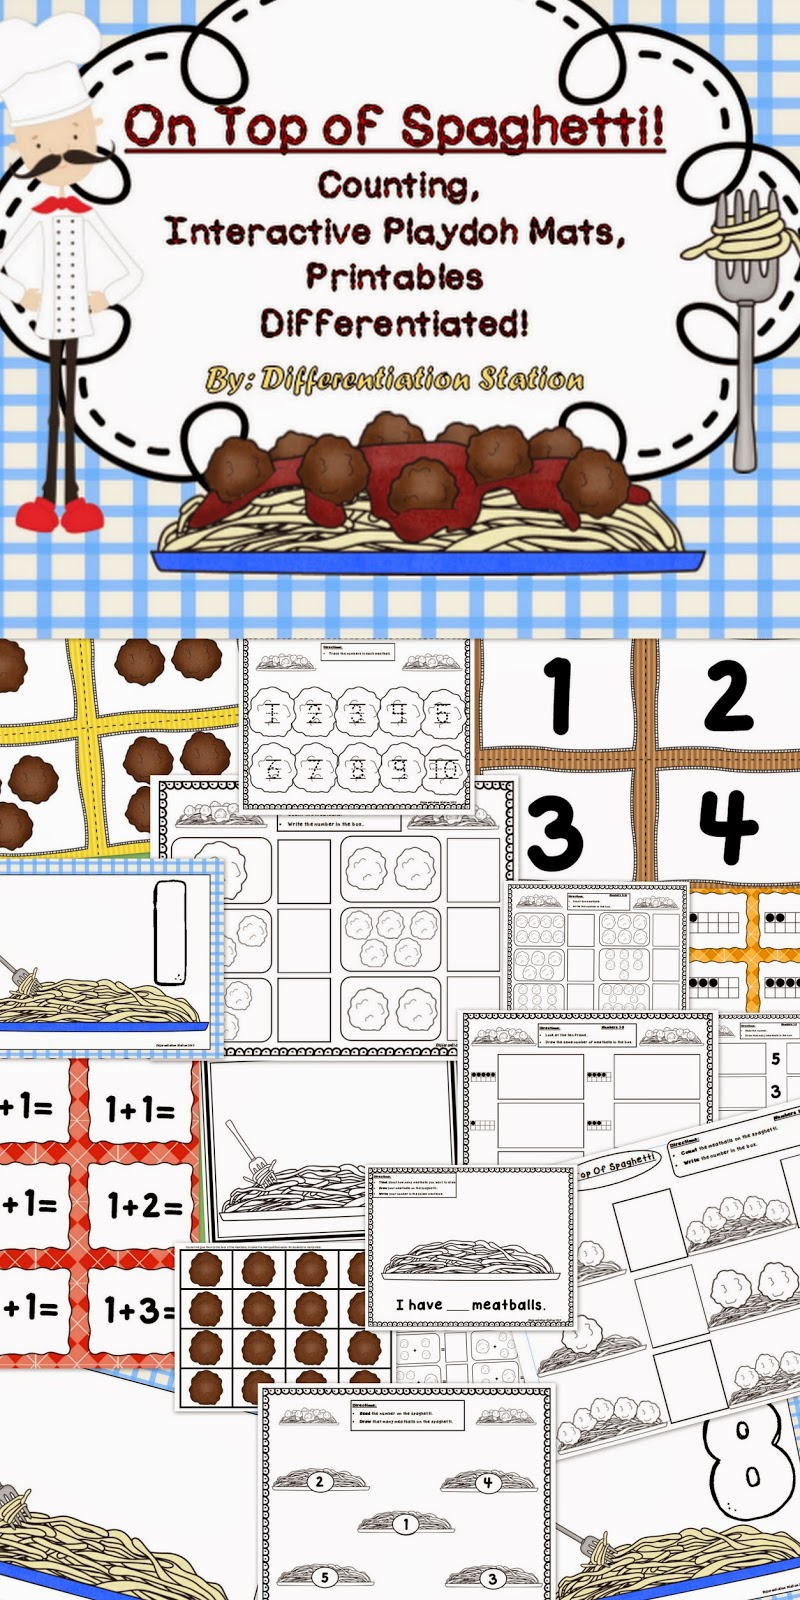 http://www.teacherspayteachers.com/Product/On-Top-of-Spaghetti-Interactive-Playdoh-Mats-Counting-Centers-Printables-914921